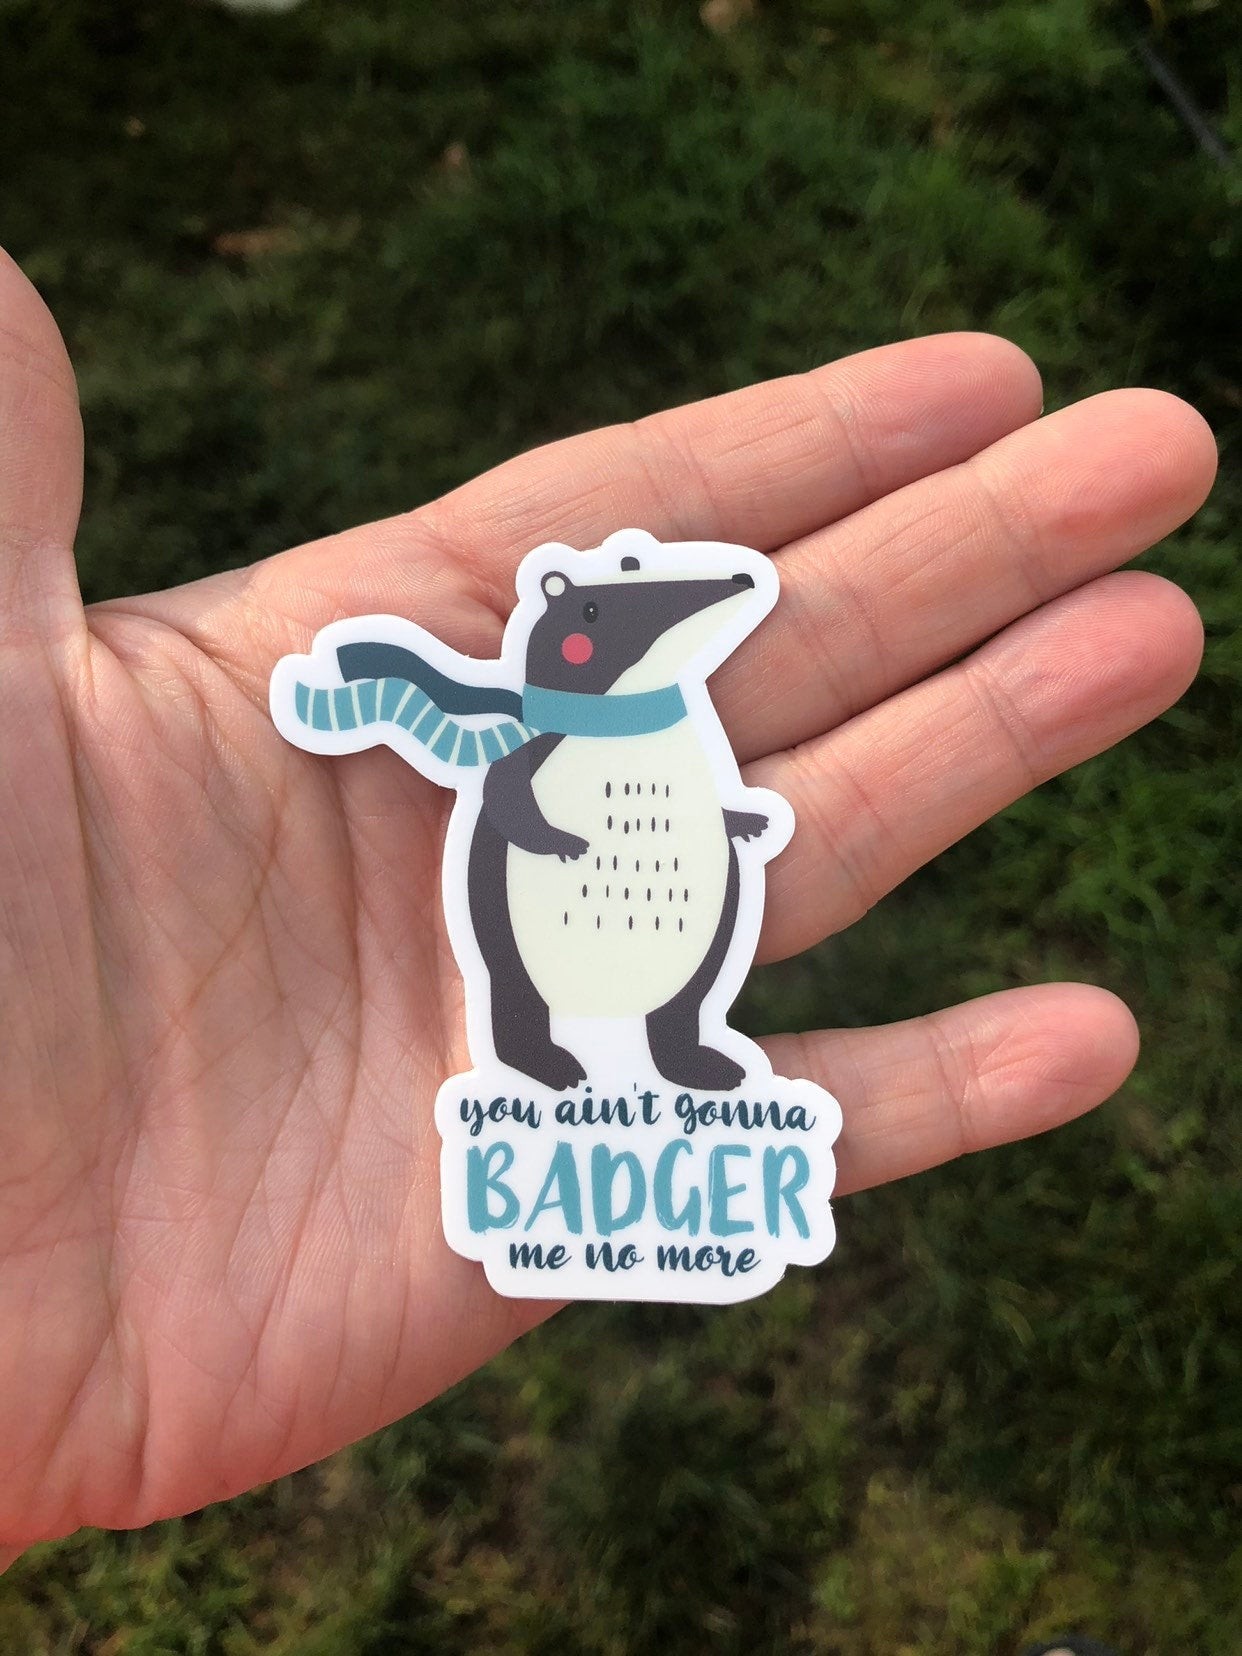 You ain't gonna badger me no more funny sticker